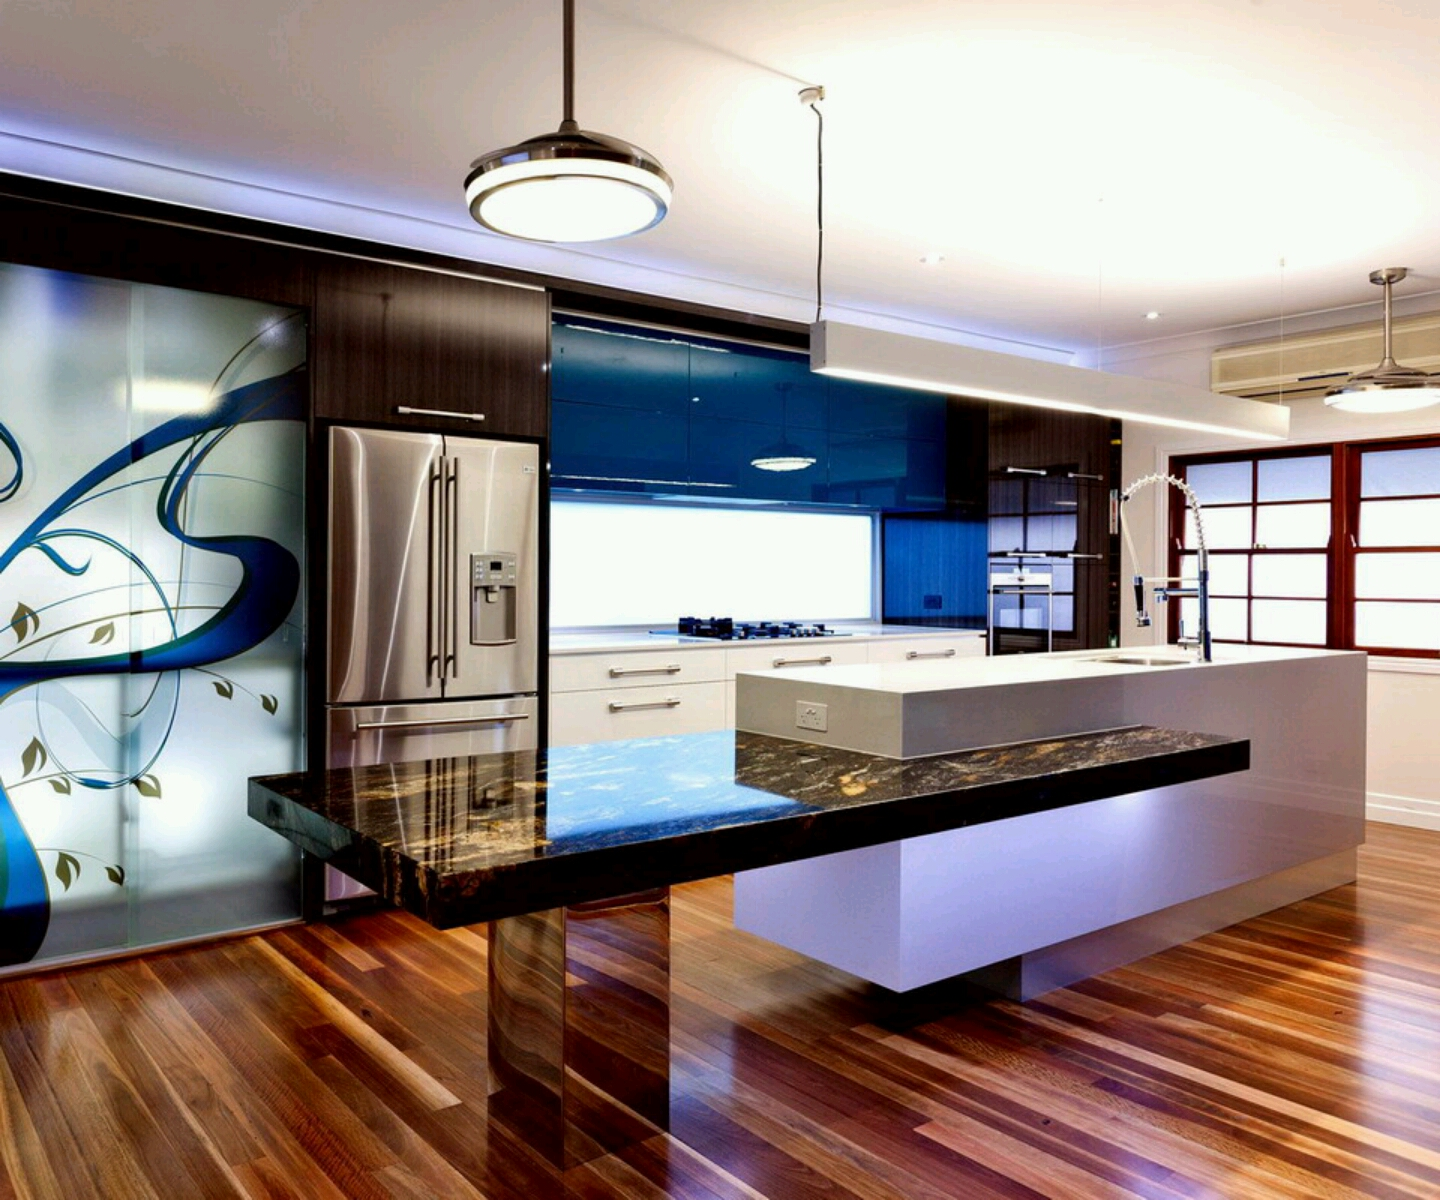 New home designs latest ultra modern kitchen designs ideas - New homes interior design ideas ...